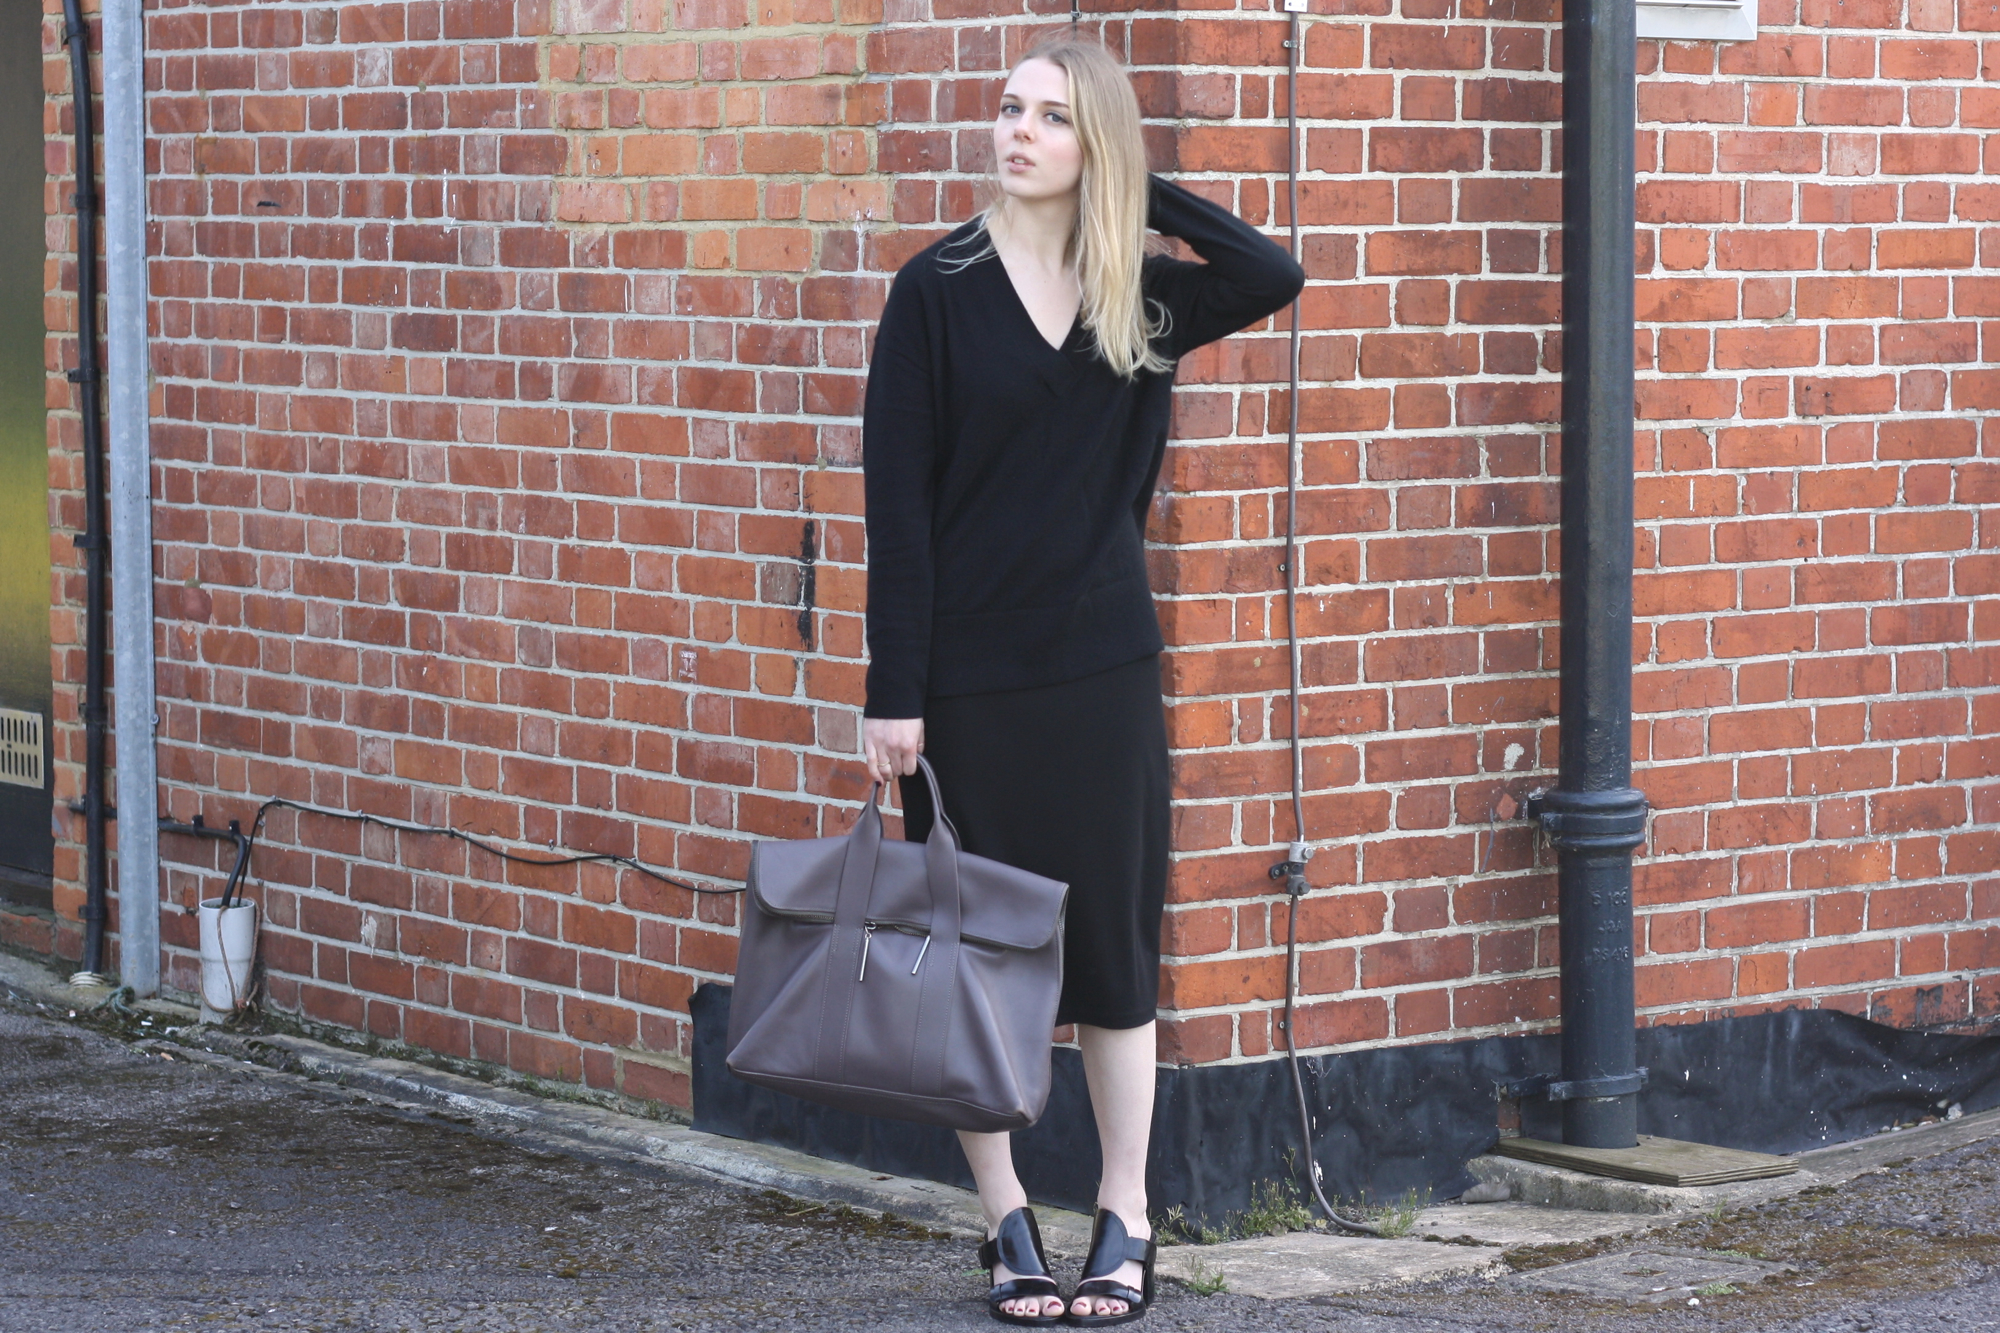 & Other Stories black cashmere jumper